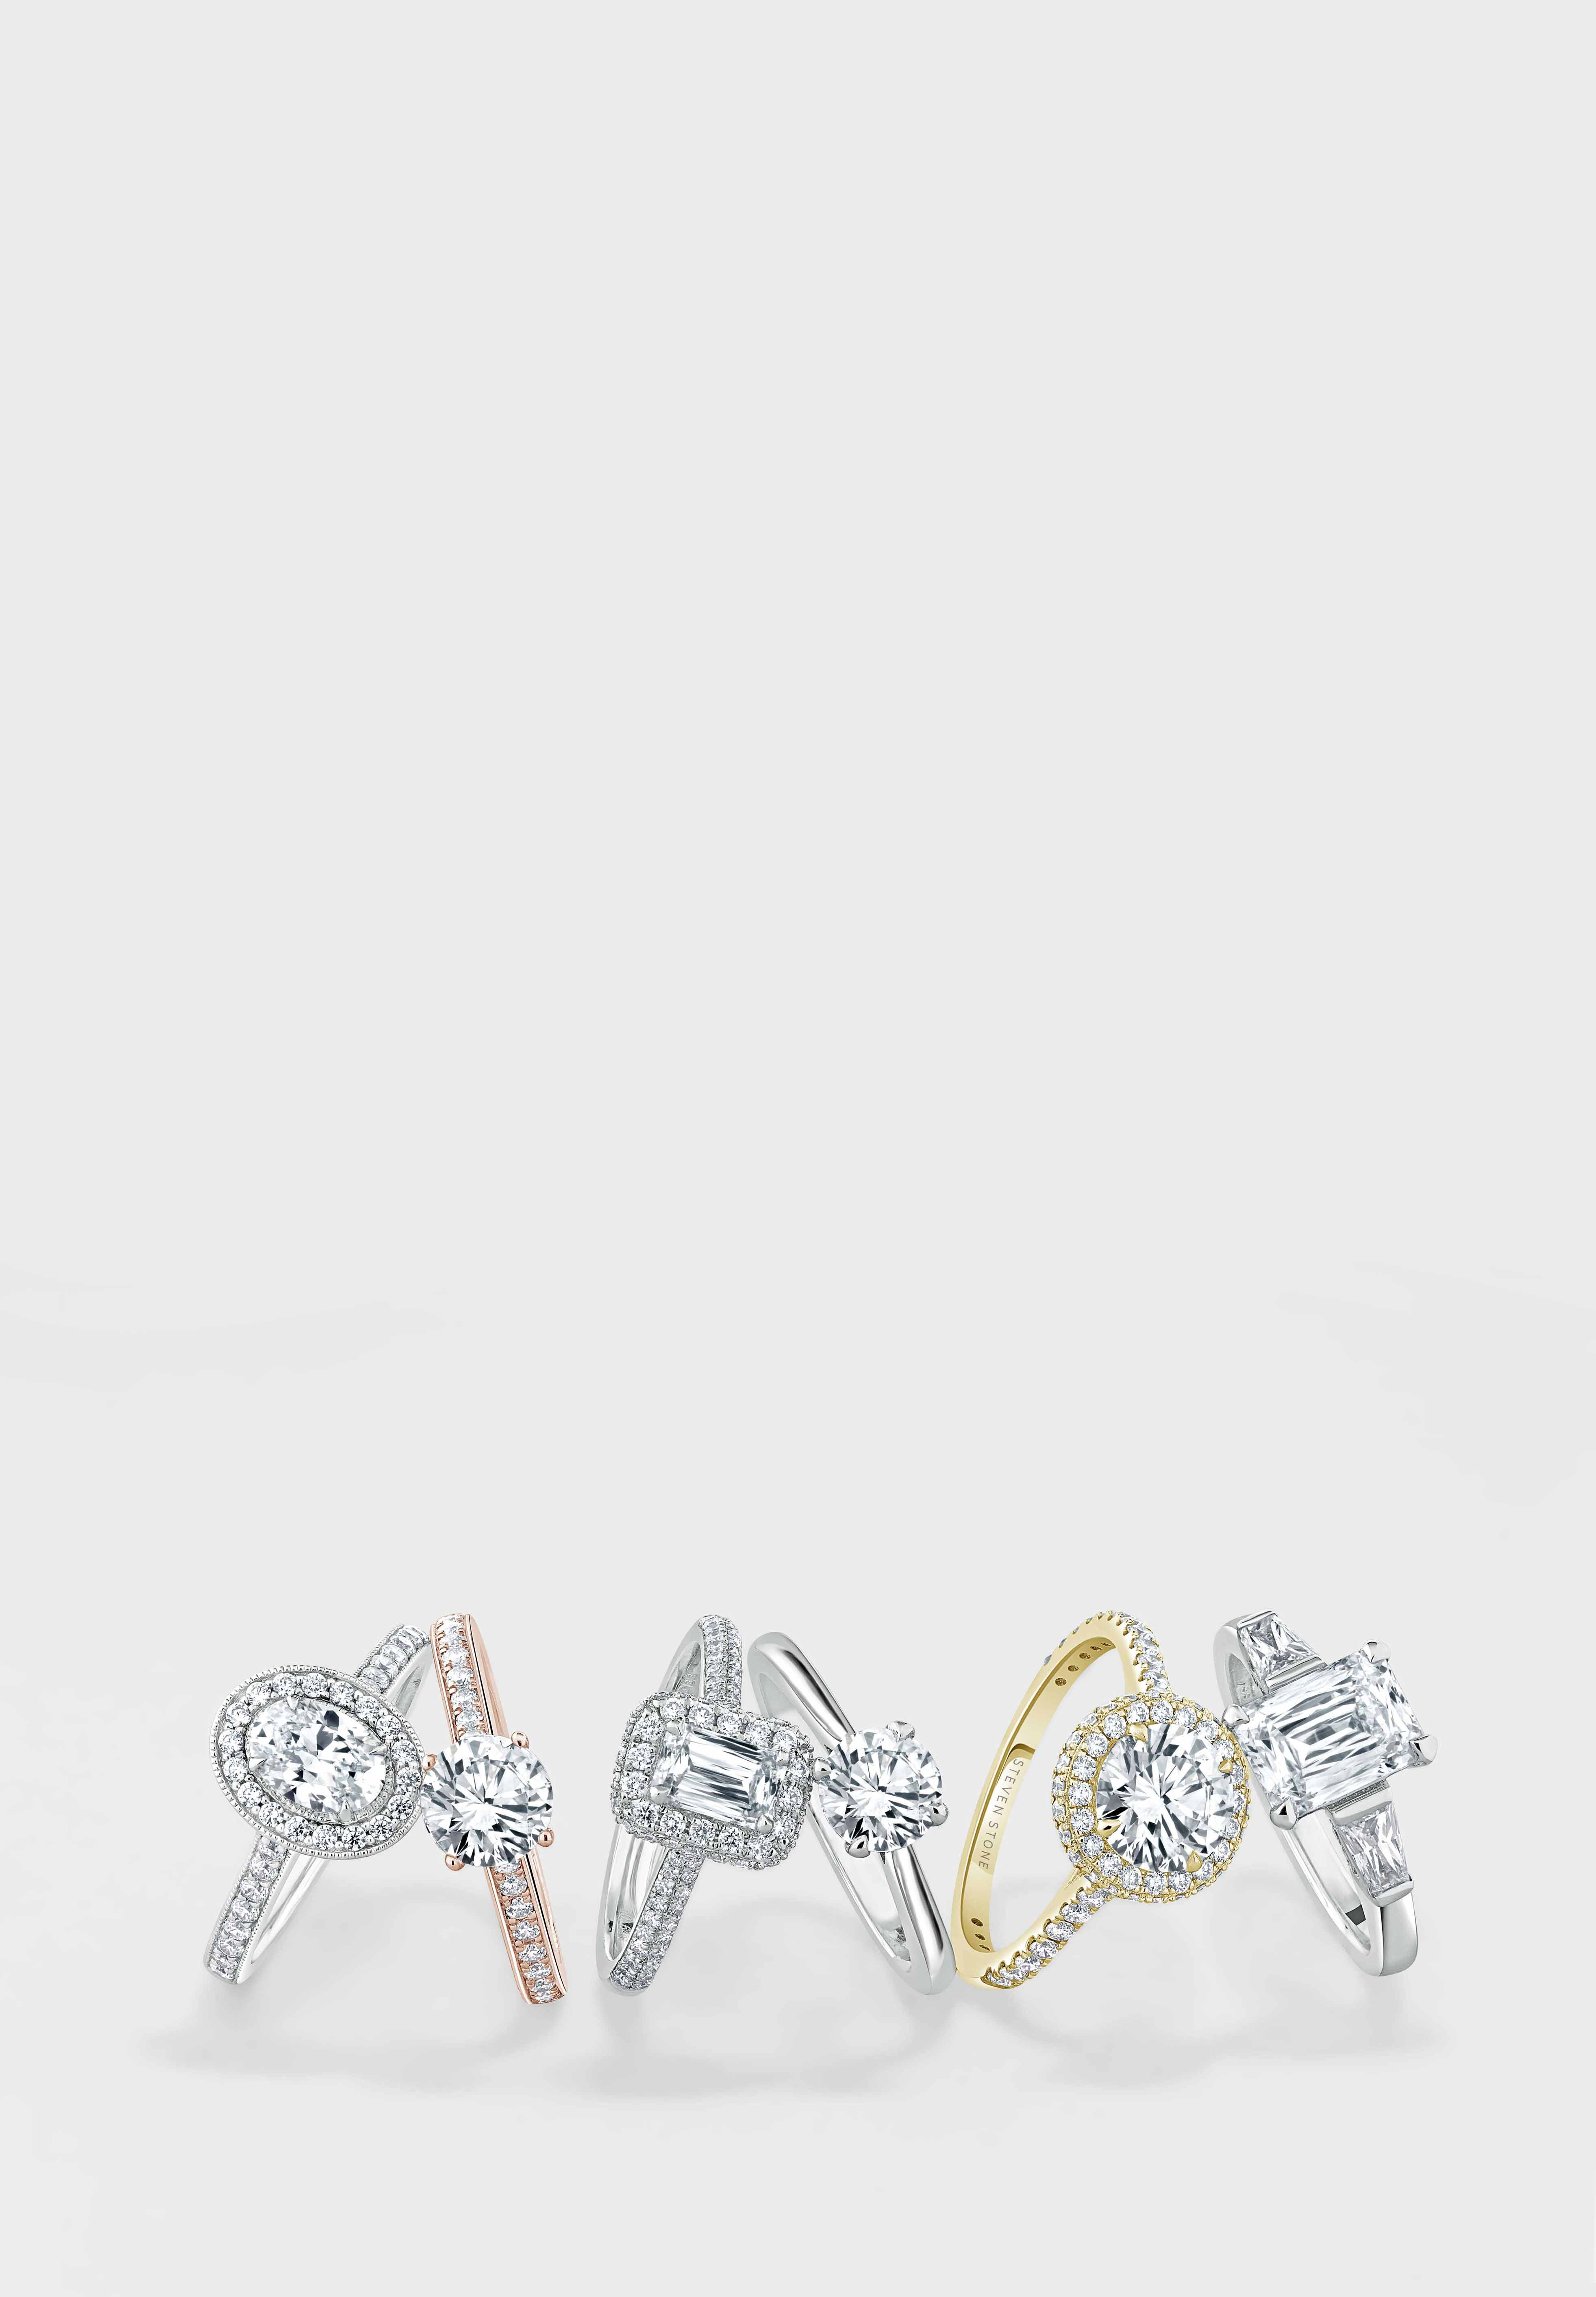 Yellow Gold Heart Shaped Engagement Rings - Steven Stone